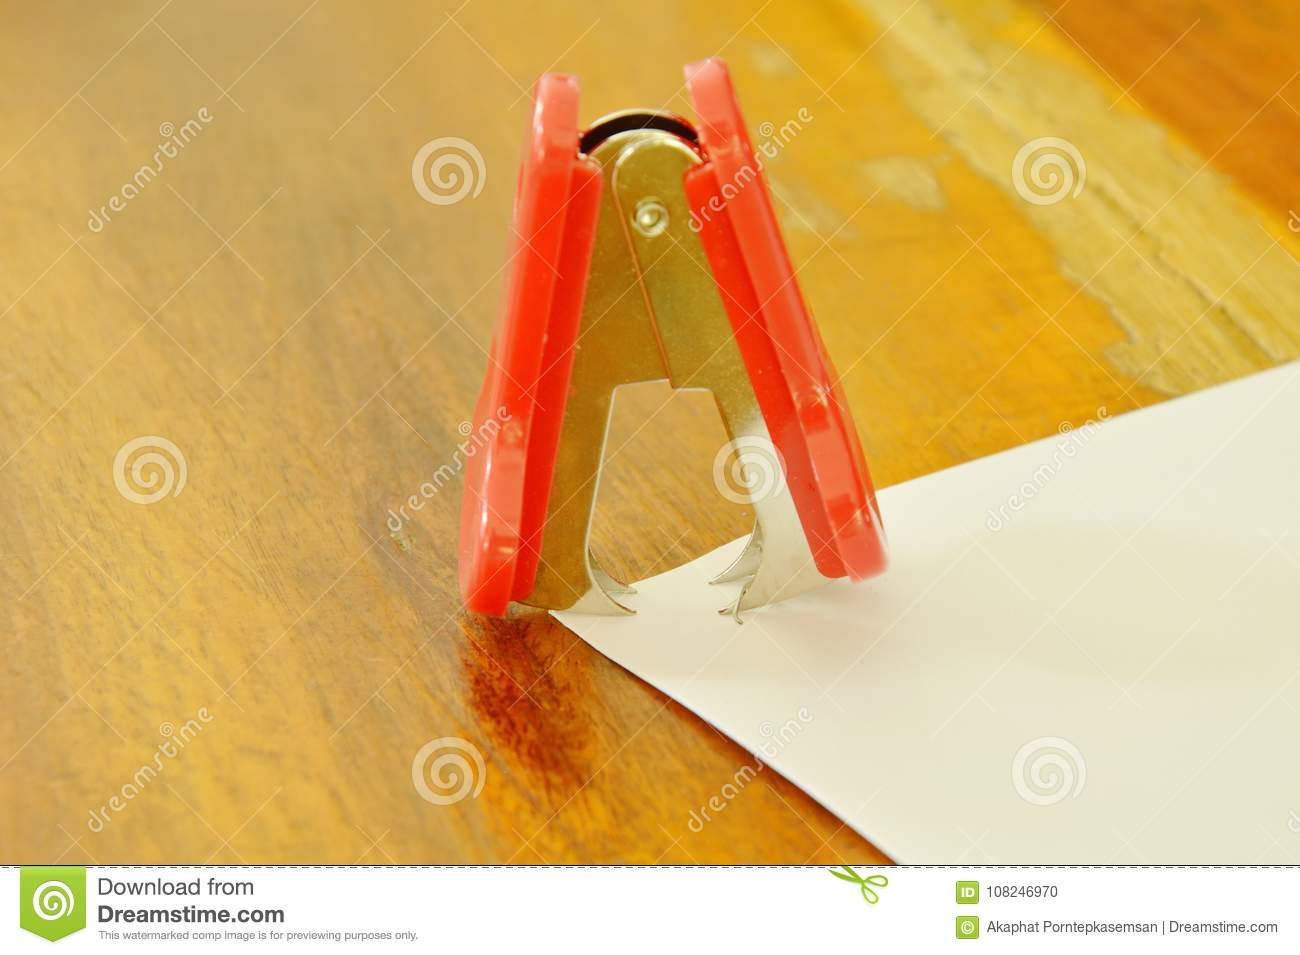 Staple Remover Pulling Wire From Paper On Wooden Table Stock Photo ...